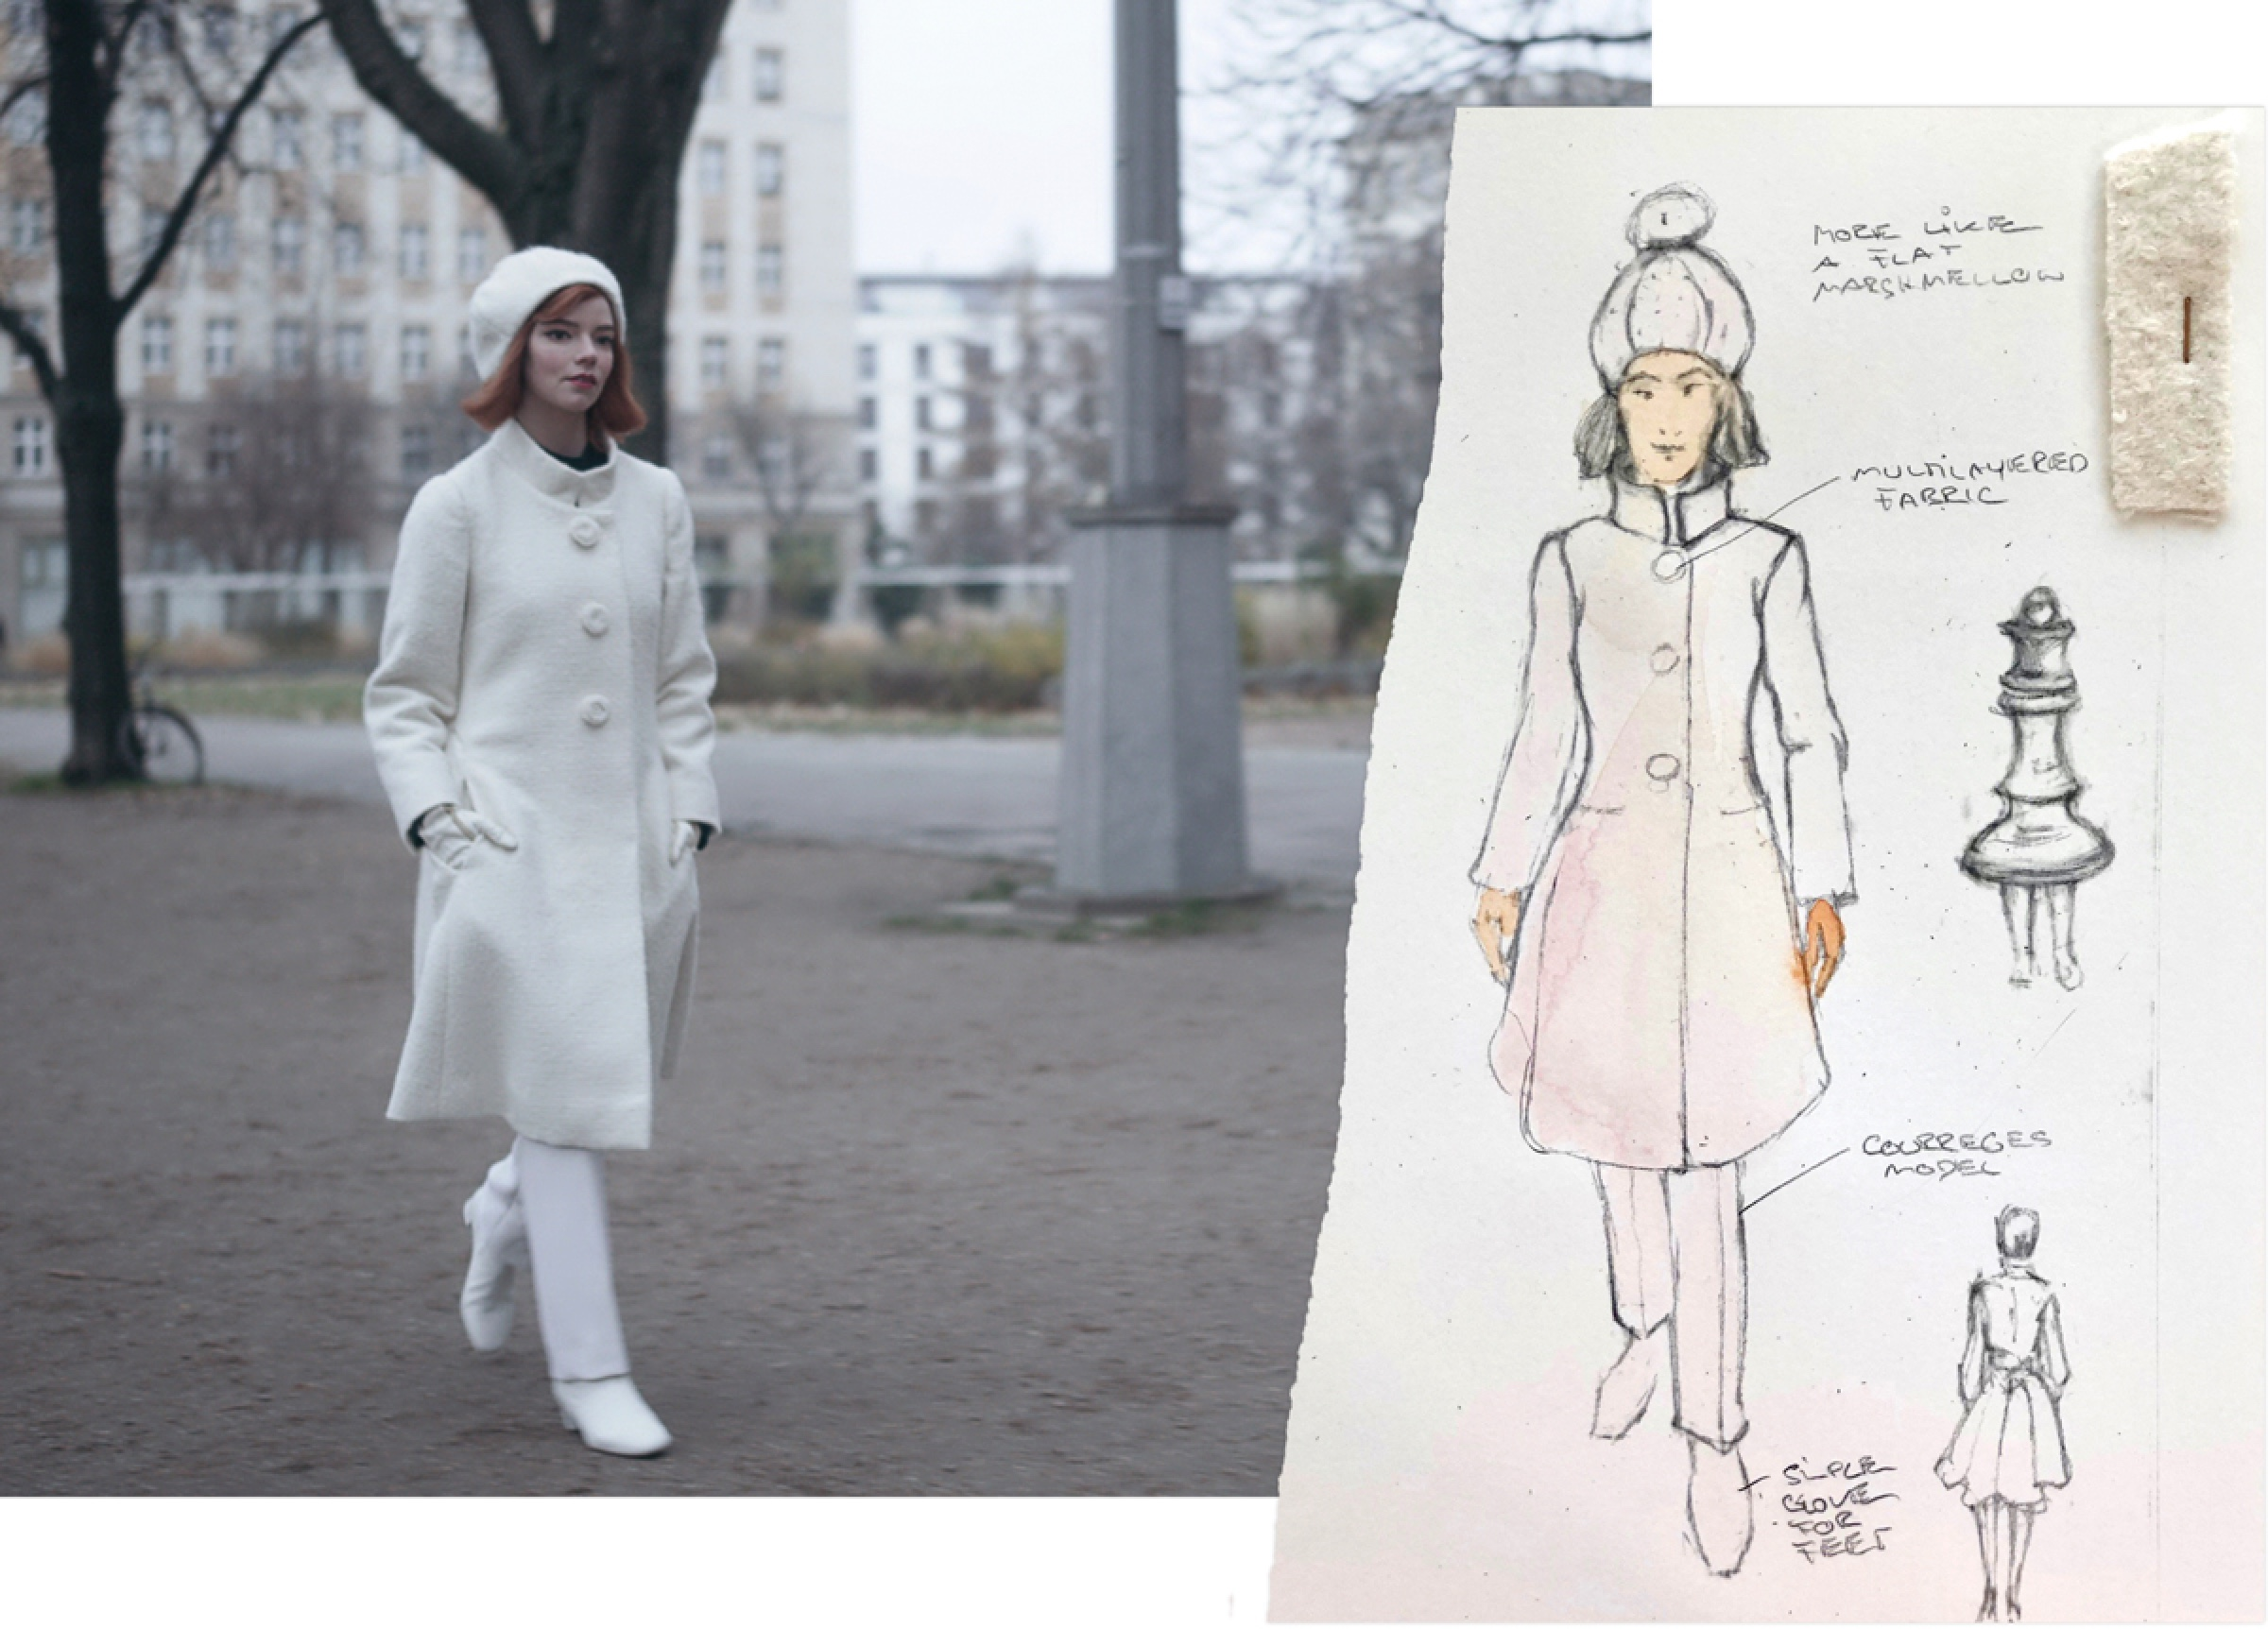 Beth in her all-white ensemble, strutting through the streets of Moscow. A still from the series is matched with its corresponding costume sketch, which compares the costume's silhouette with that of the queen piece.